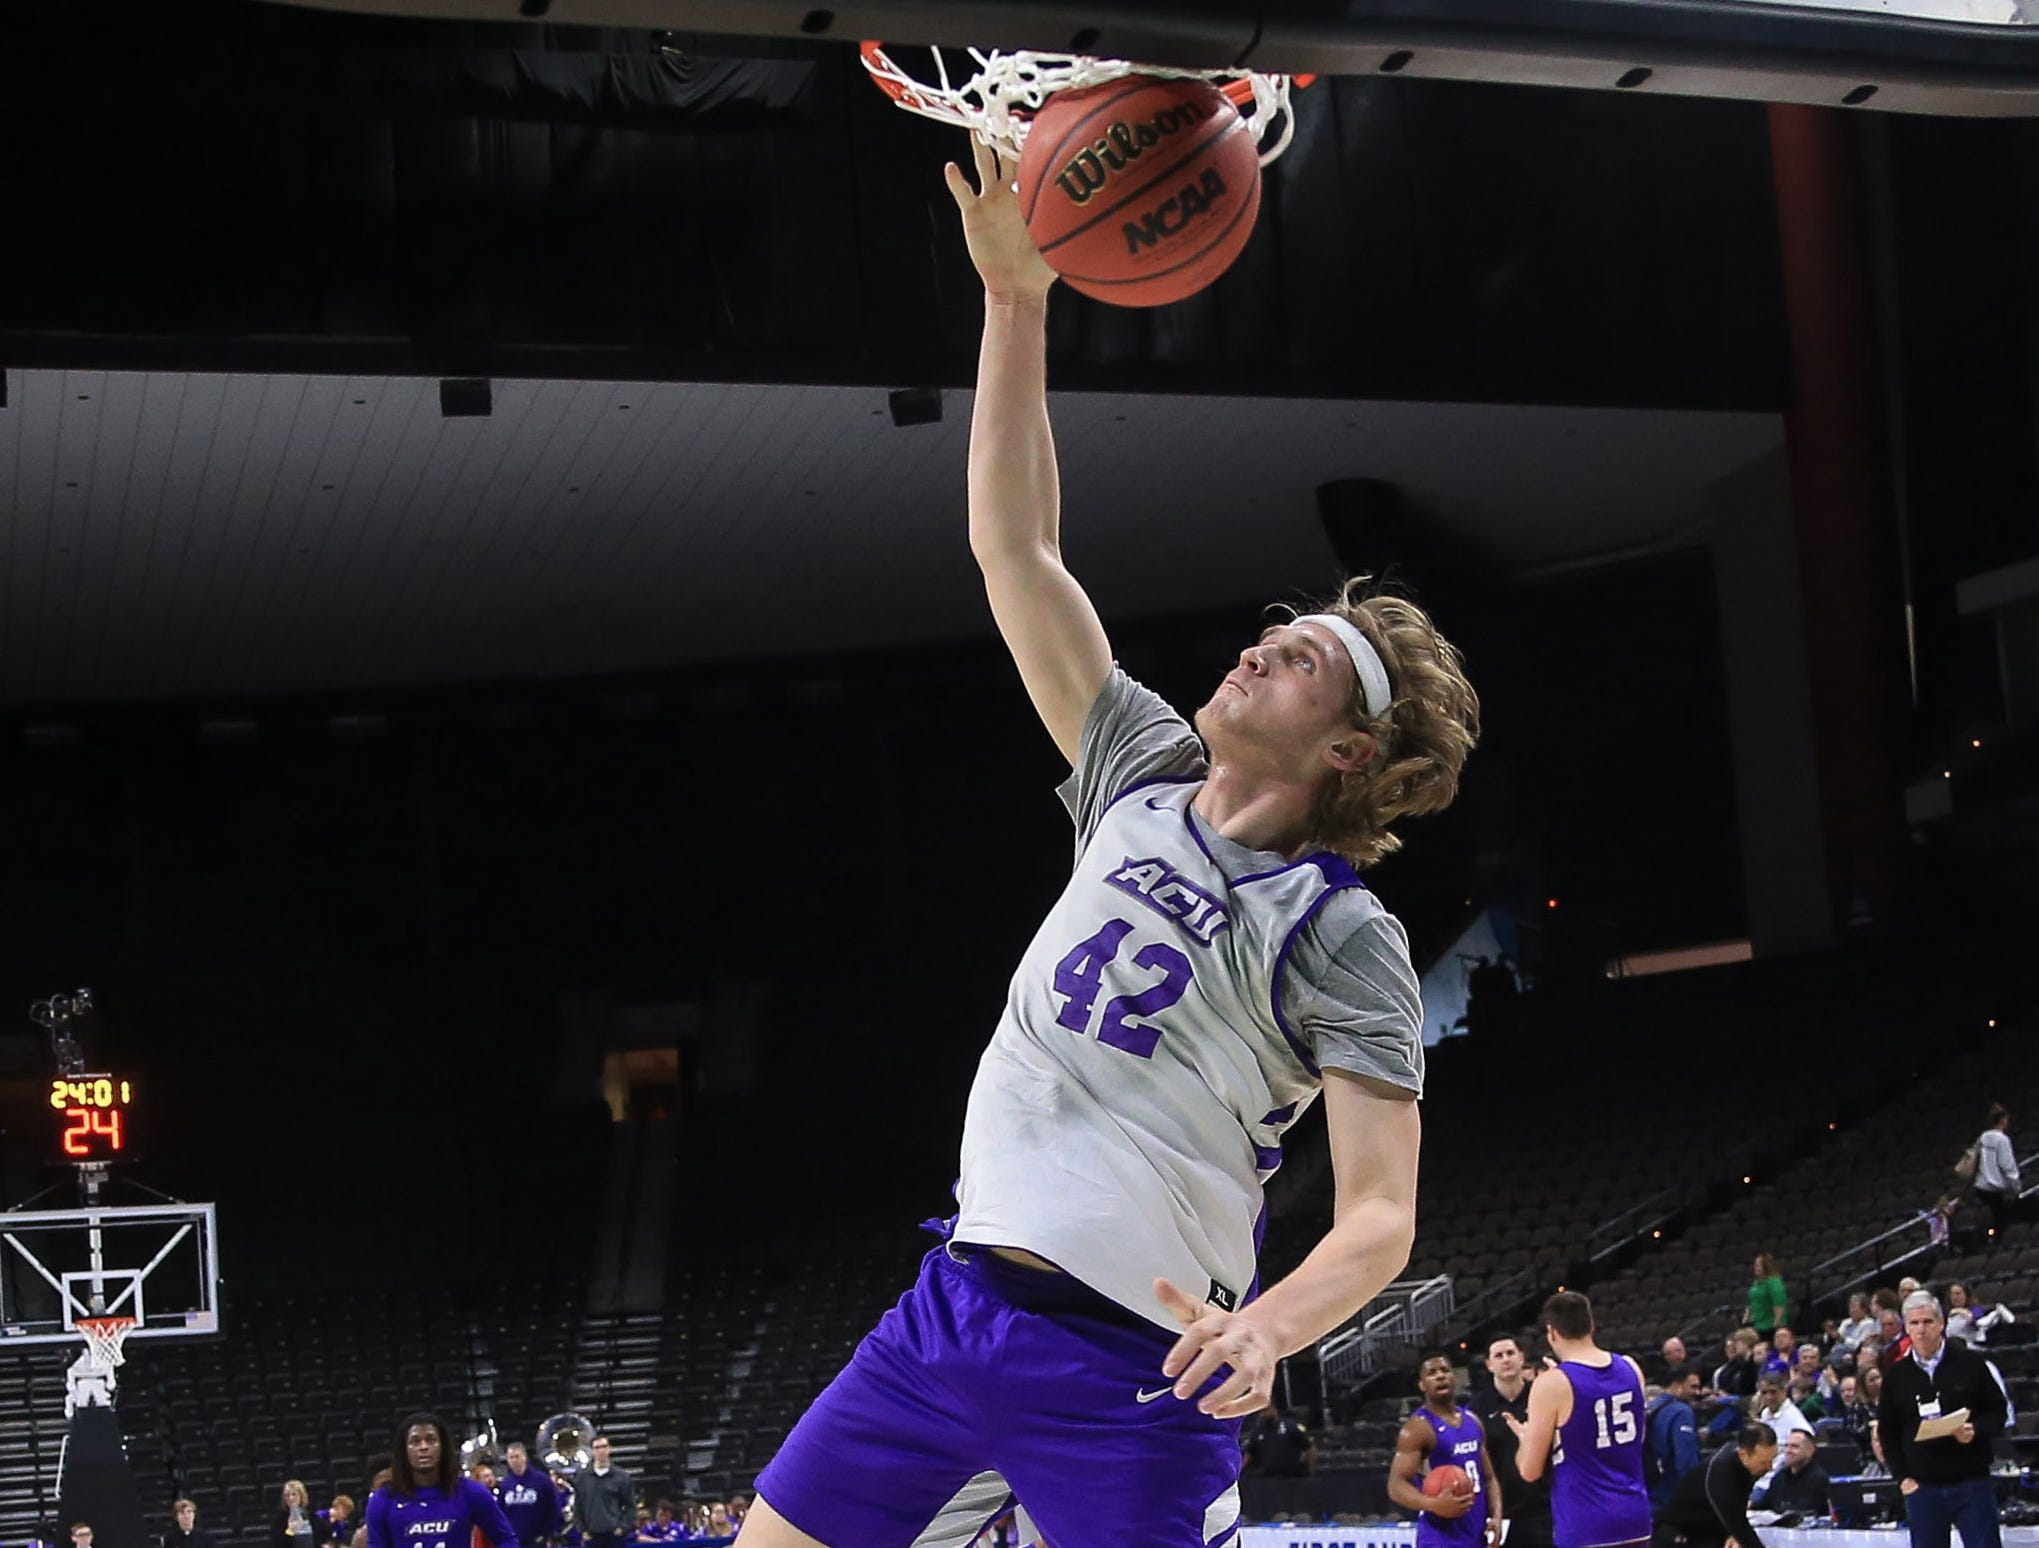 Mar 20, 2019; Jacksonville, FL, USA; Abilene Christian Wildcats forward Clay Gayman (42) during practice day before the first round of the 2019 NCAA Tournament at Jacksonville Veterans Memorial Arena. Mandatory Credit: Matt Stamey-USA TODAY Sports